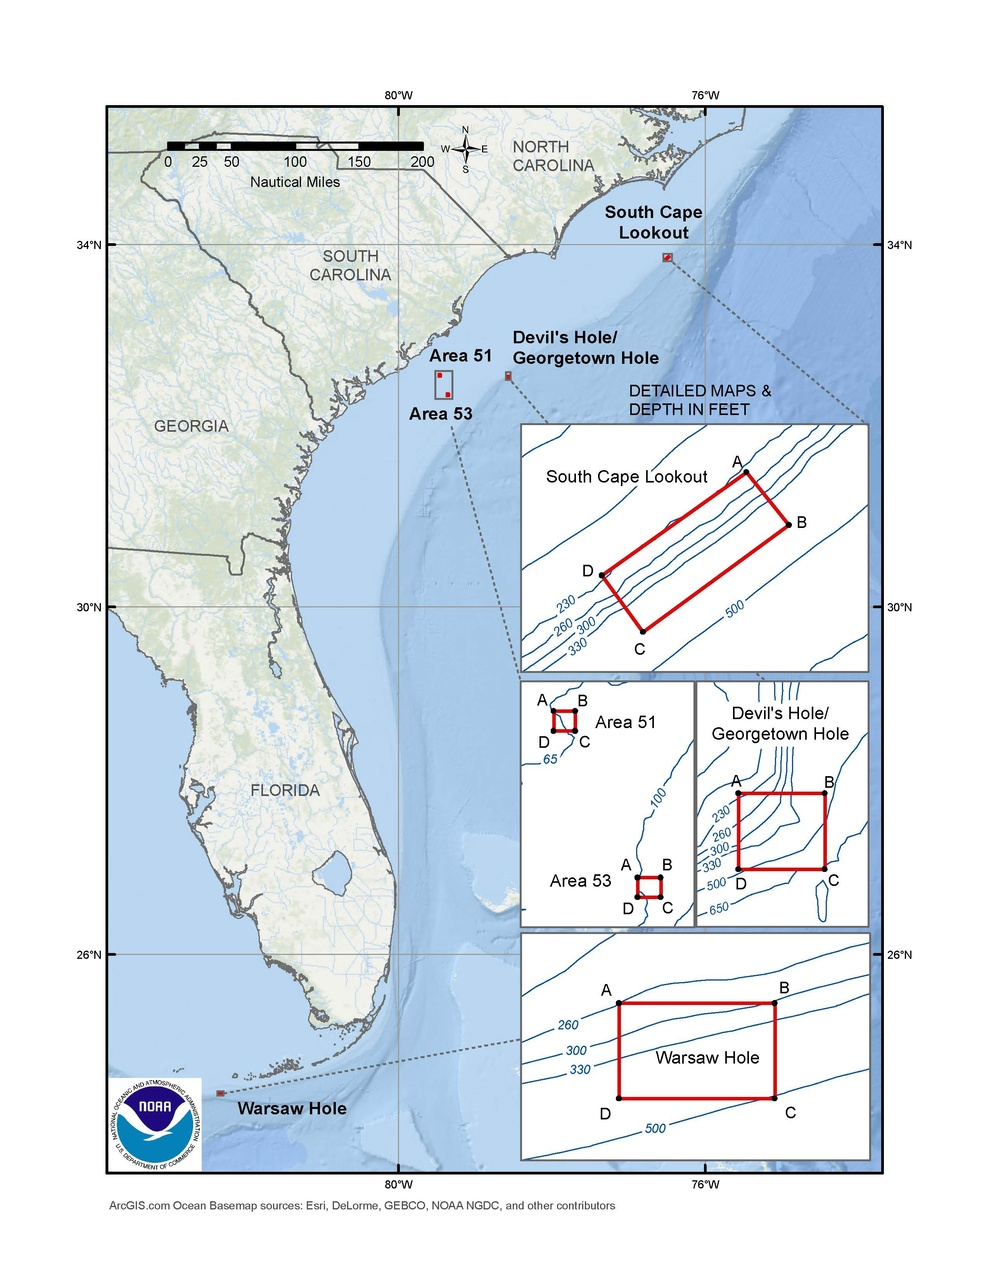 This is a map of the spawning SMZs for the snapper-grouper fishery in the South Atlantic Region.